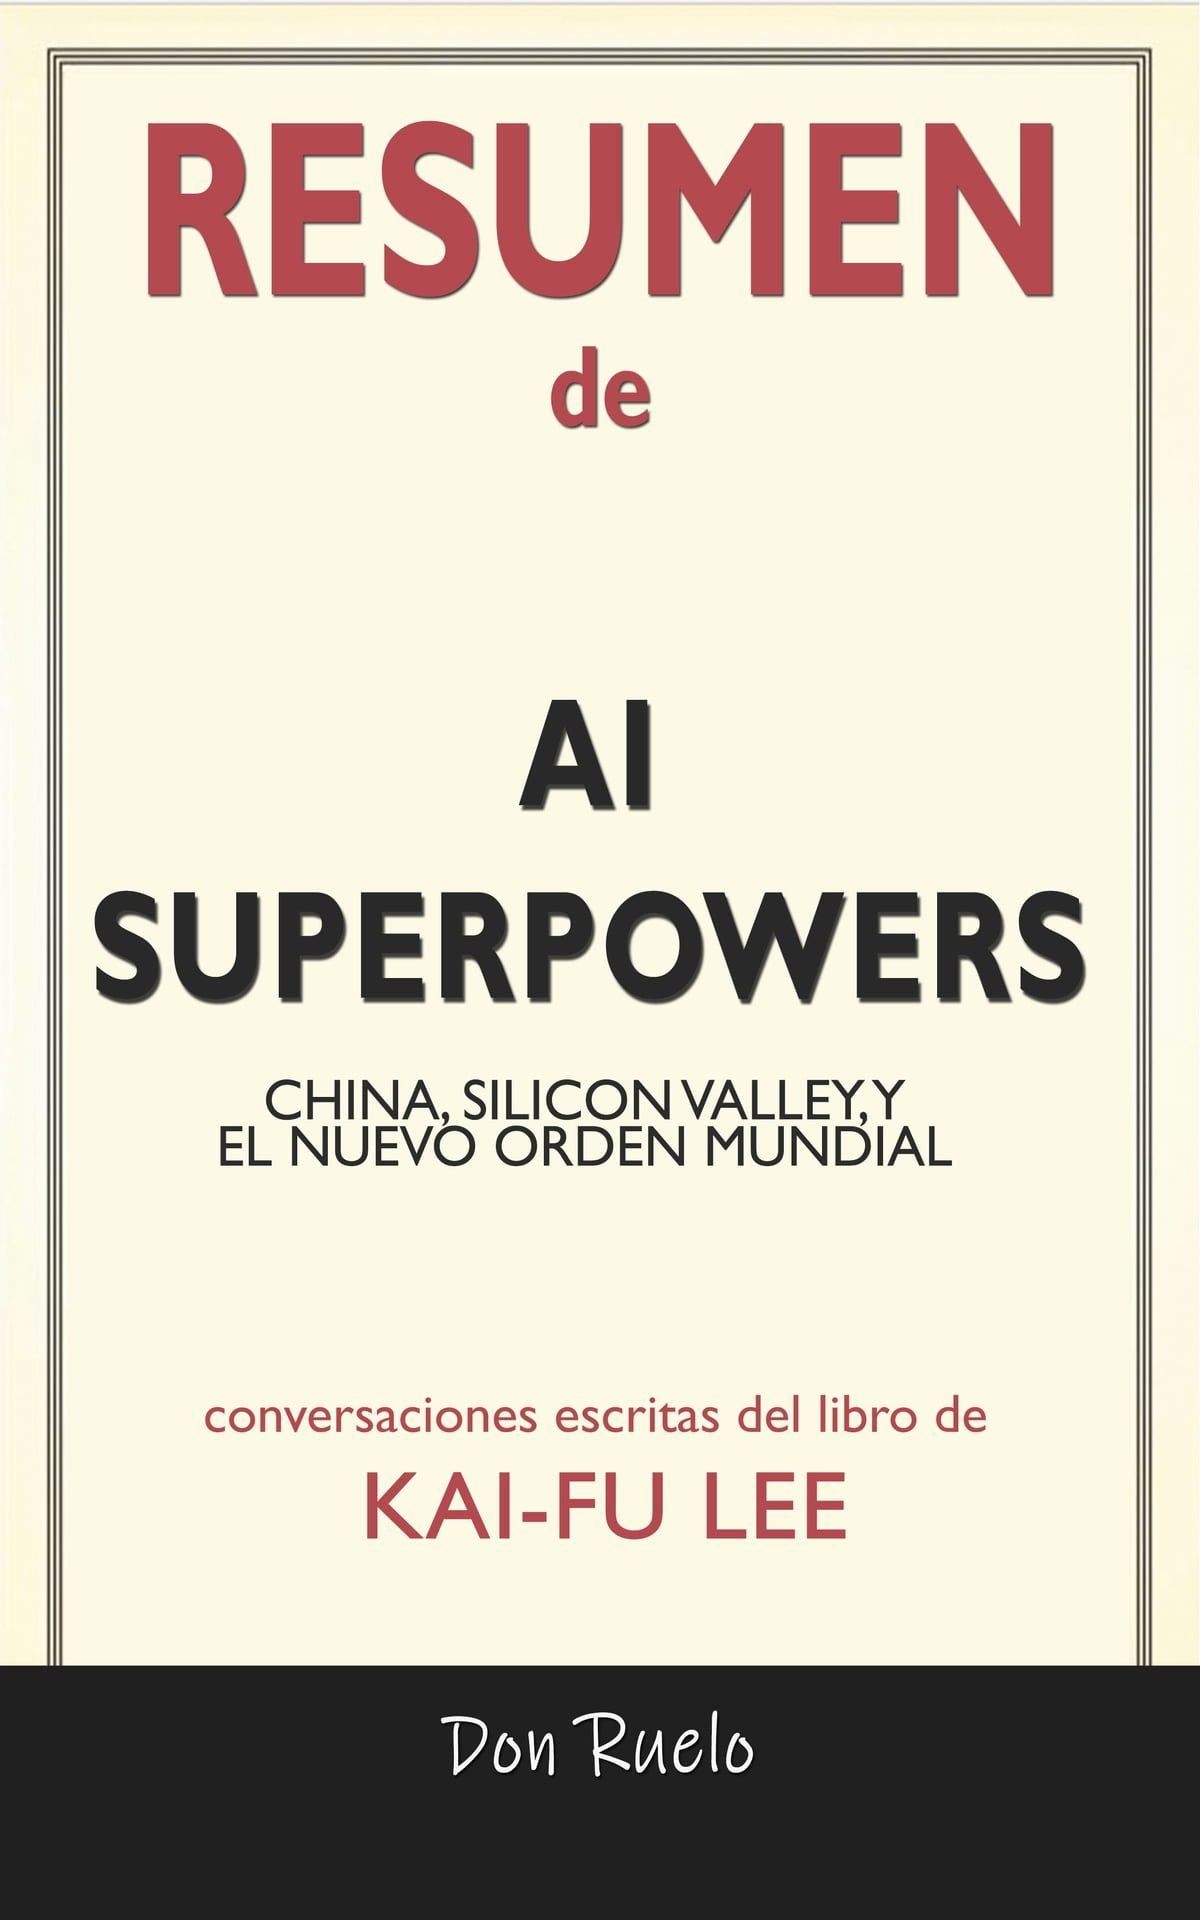 Nuevo Orden Mundial Libro Resumen De Ai Superpowers Ebooks By Don Ruelo Rakuten Kobo